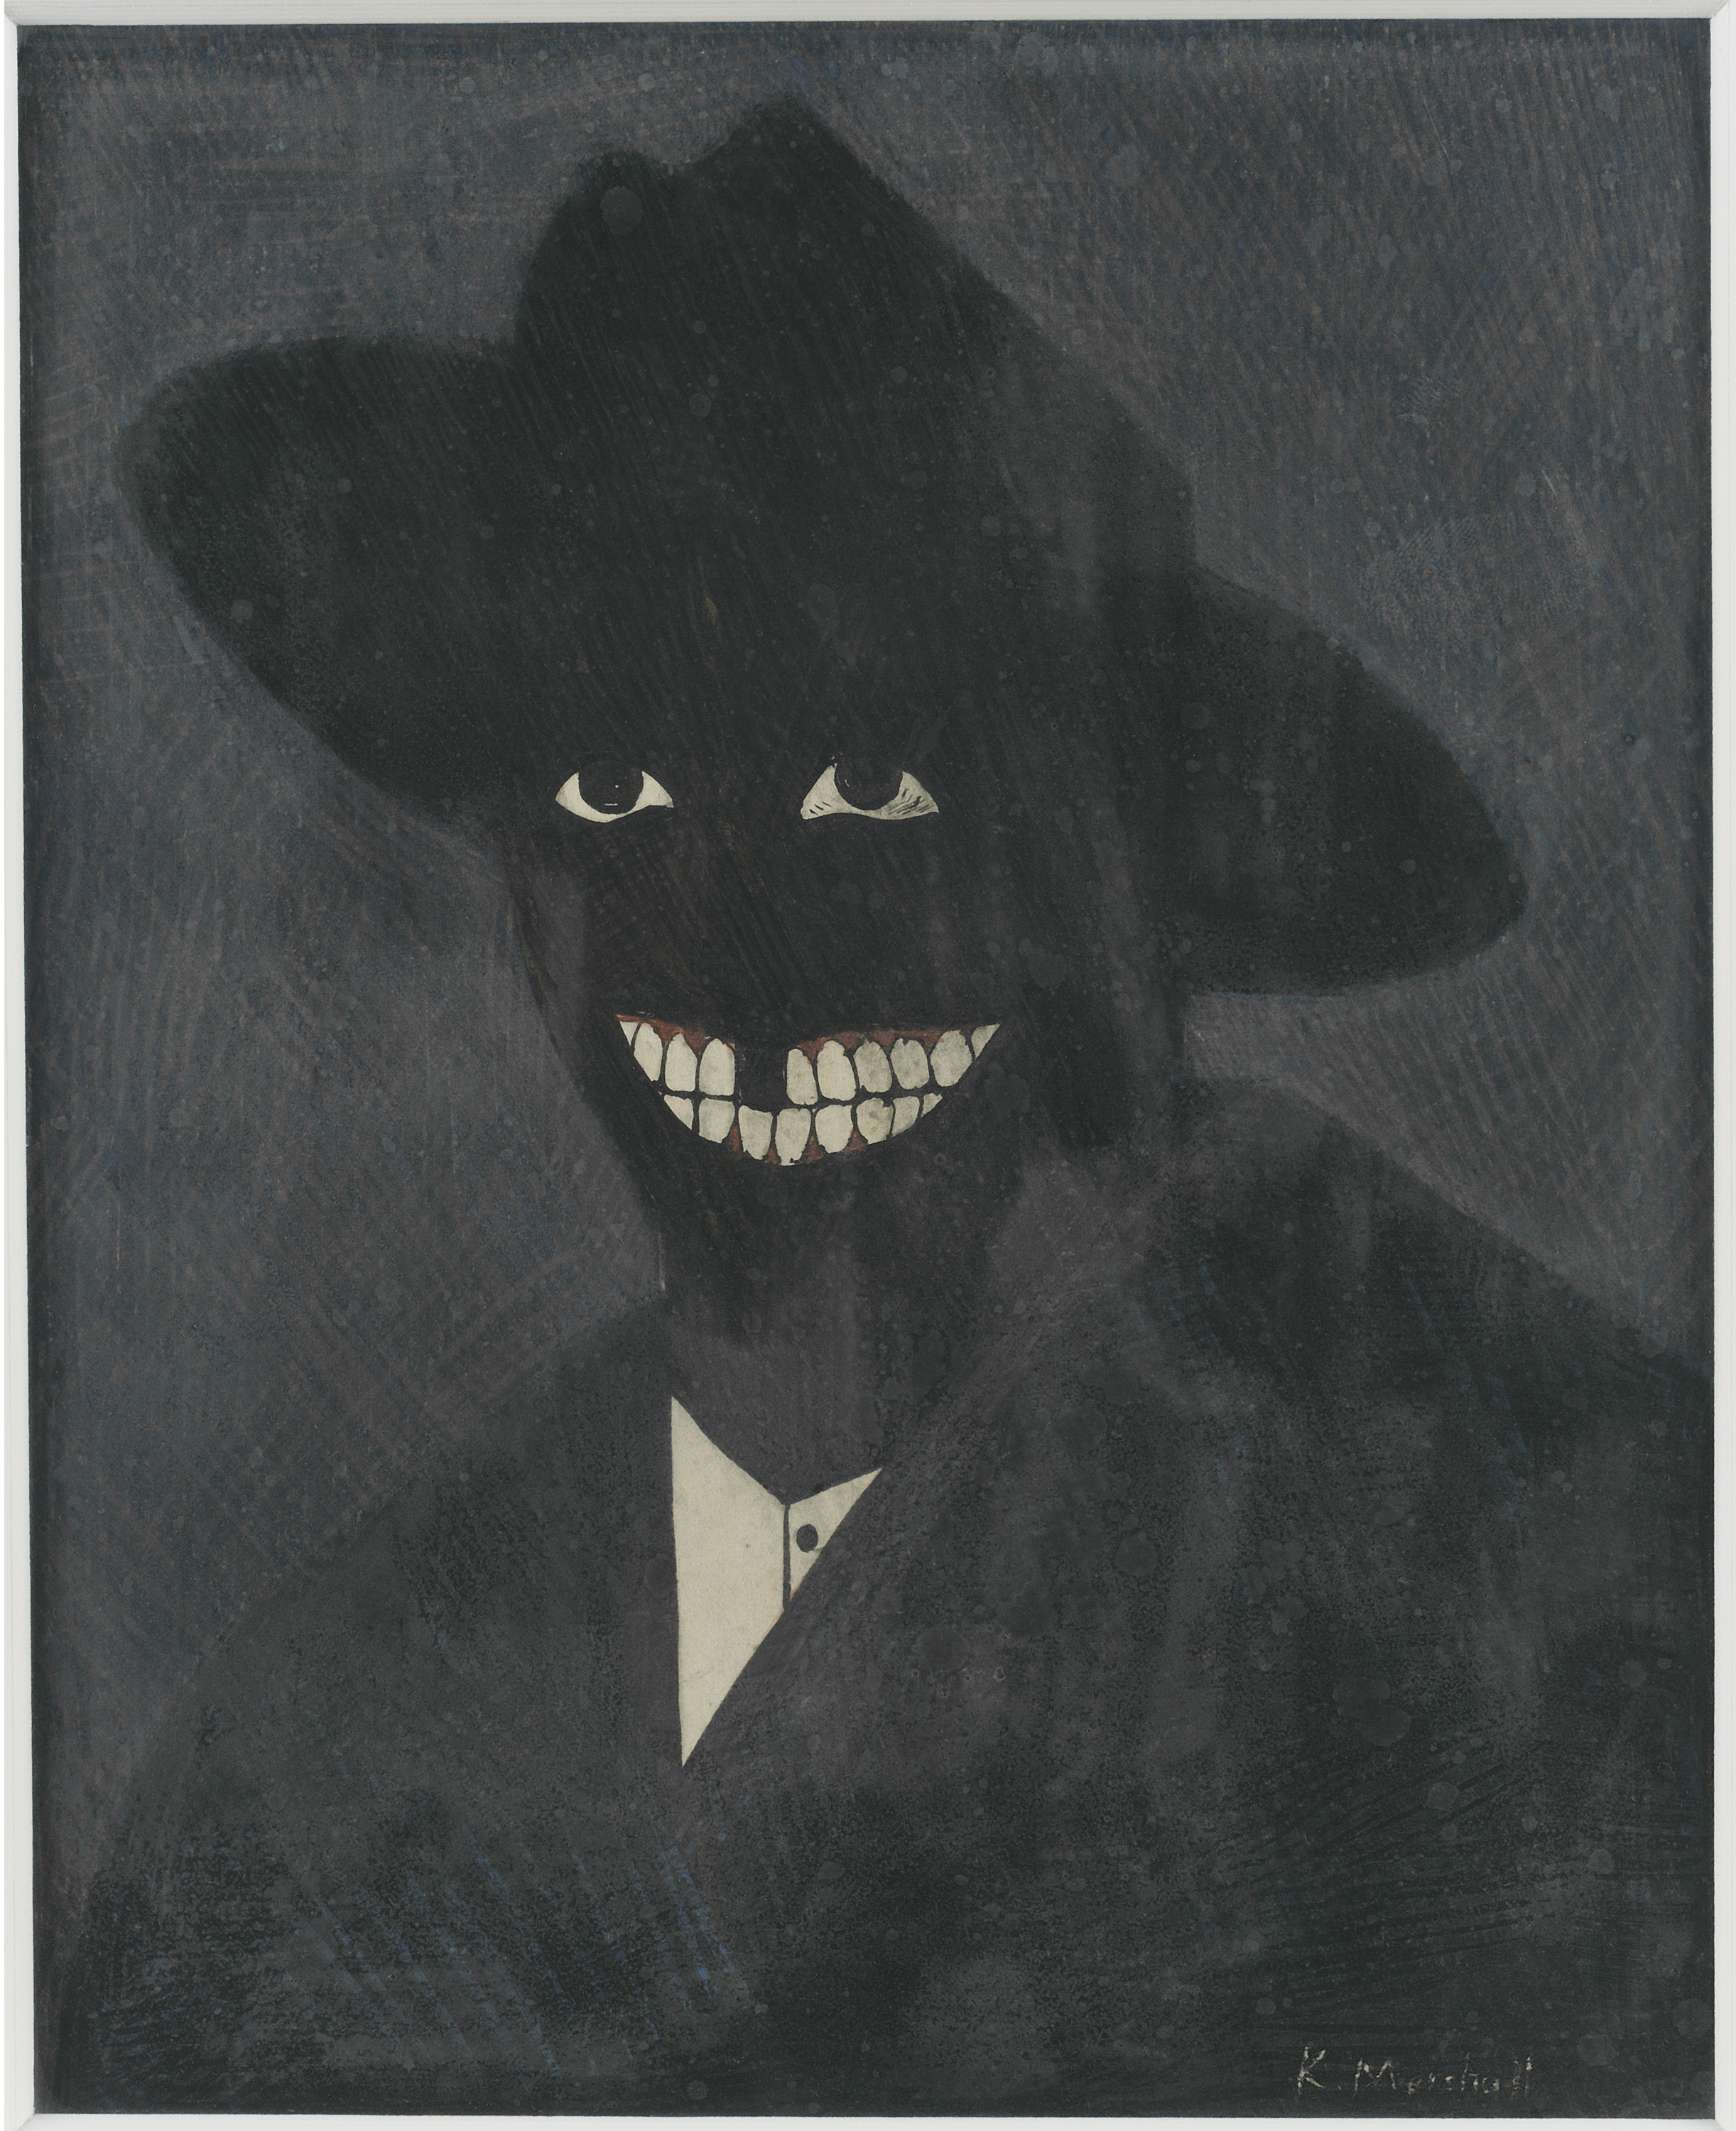 Kerry James Marshall, A Portrait of the Artist as a Shadow of His Former Self, 1980. Steven and Deborah Lebowitz. Photo: Matthew Fried, © MCA Chicago.